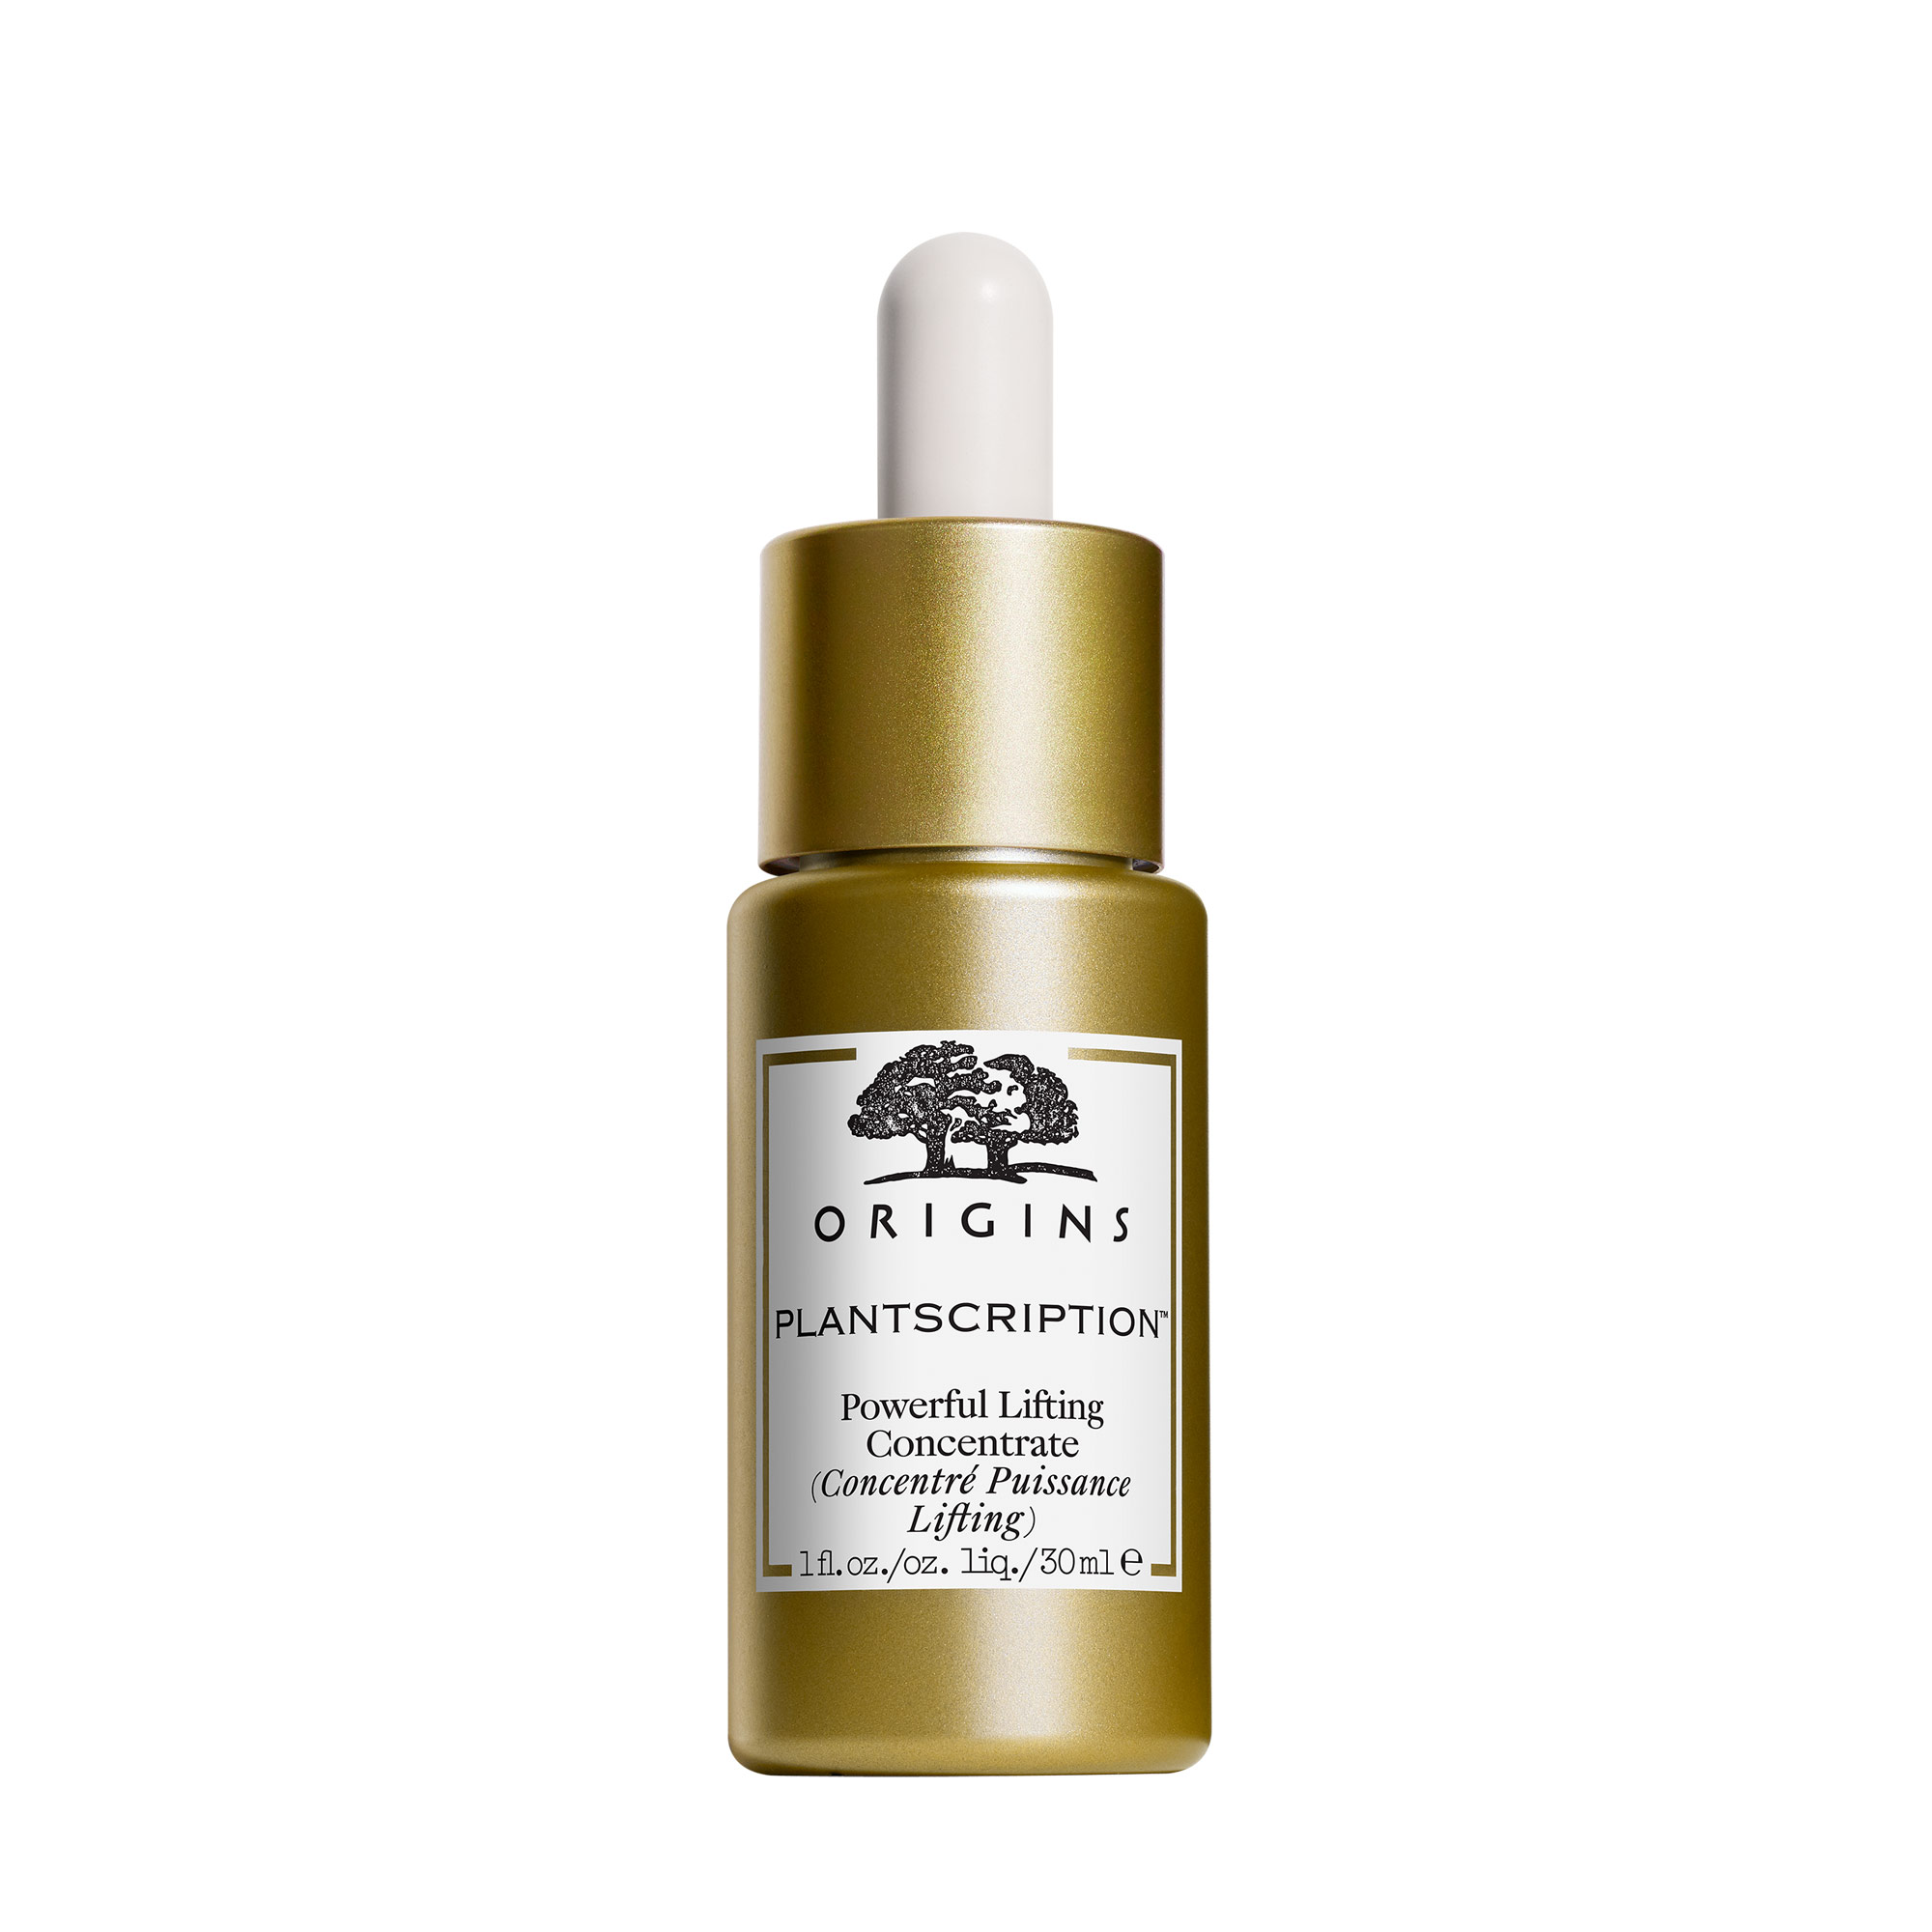 Plantscription Powerful Lifting Concentrate Serum